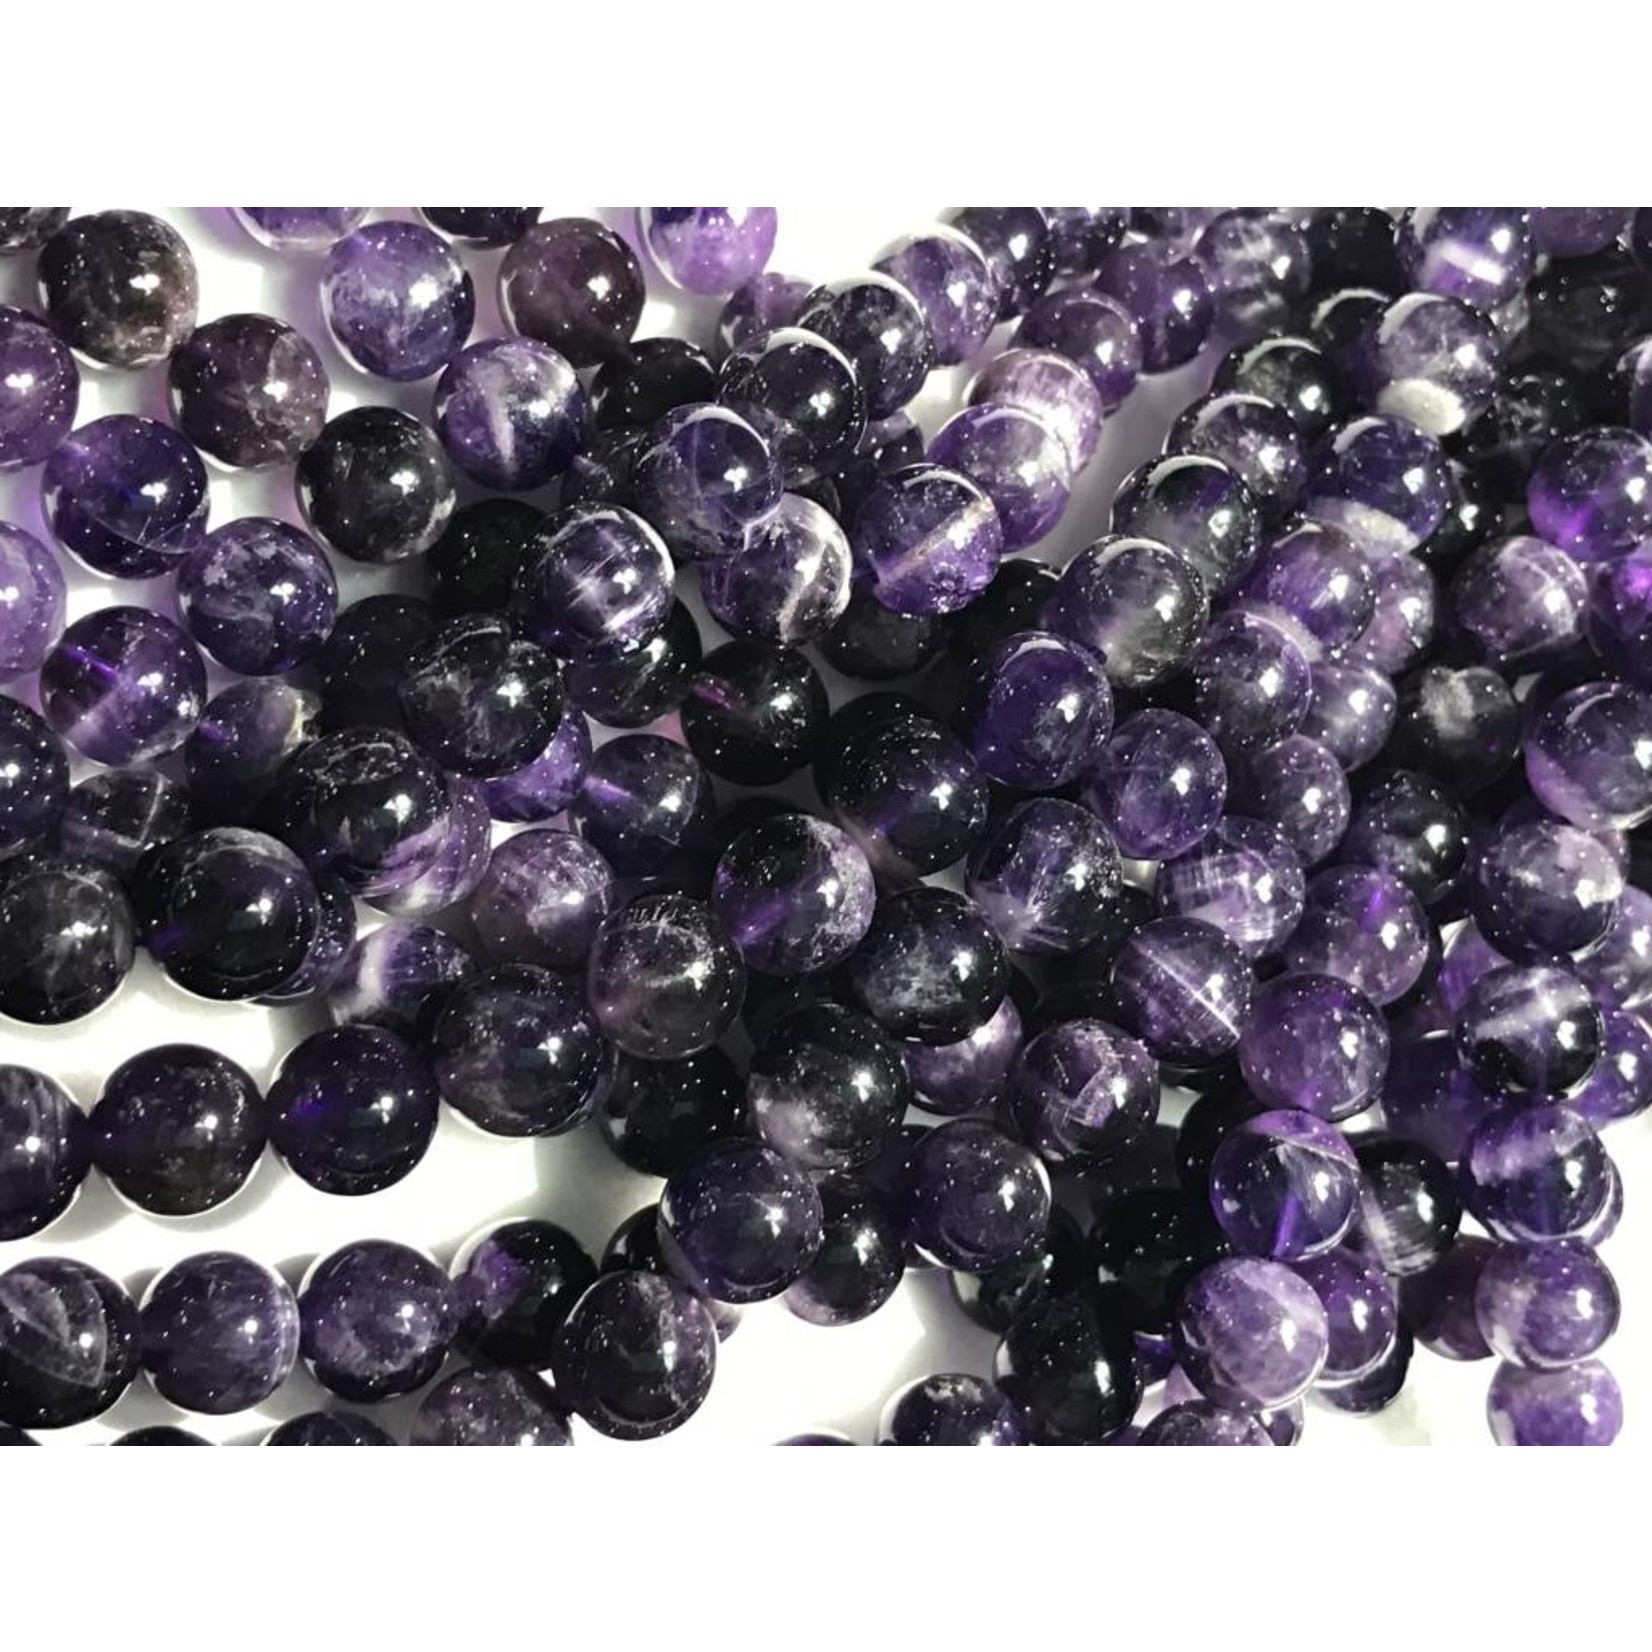 AMETHYST Grade A Natural 10mm Round